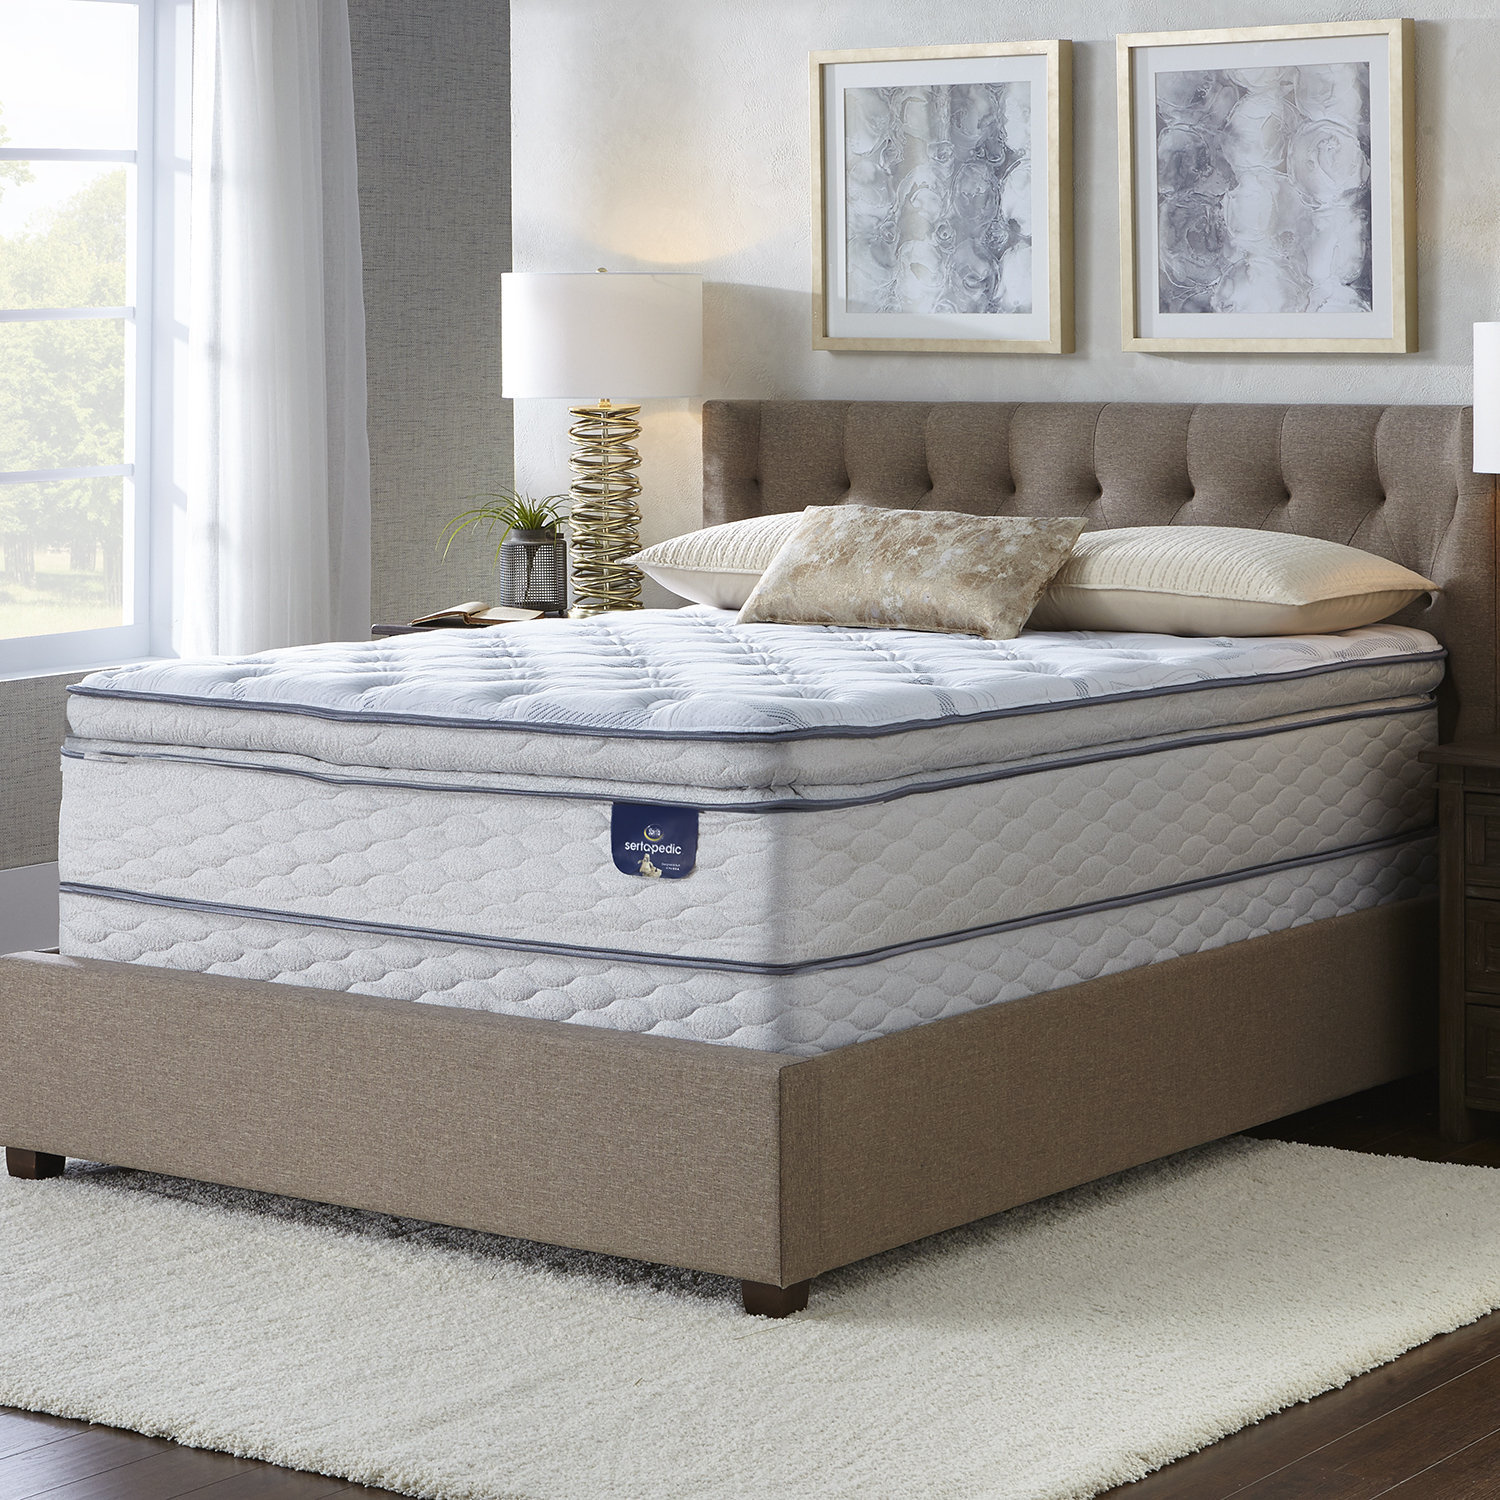 Nice Queen Size Mattress Set